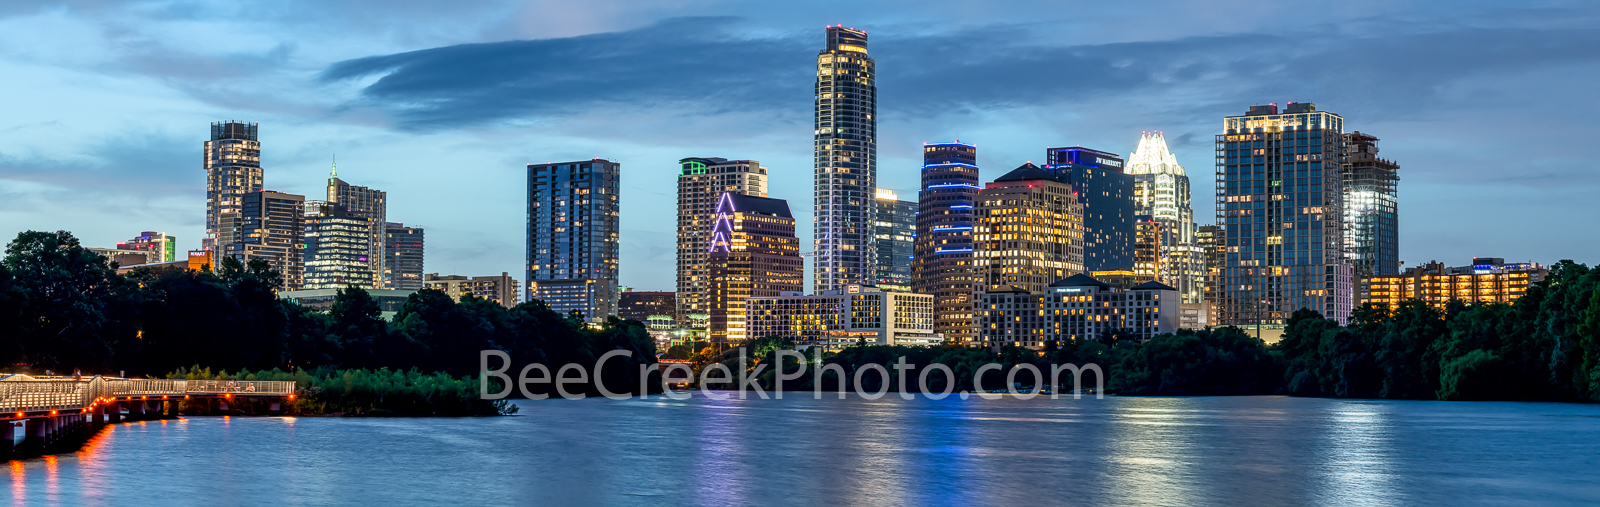 Austin Skyline, dusk, twilight, Austin, skyline, blue hour, lady bird lake, pic of texas,  hike and bike trail, cityscape, water, pano, panorama, tallest building, Independent, Jingle, Google, Northsh, photo